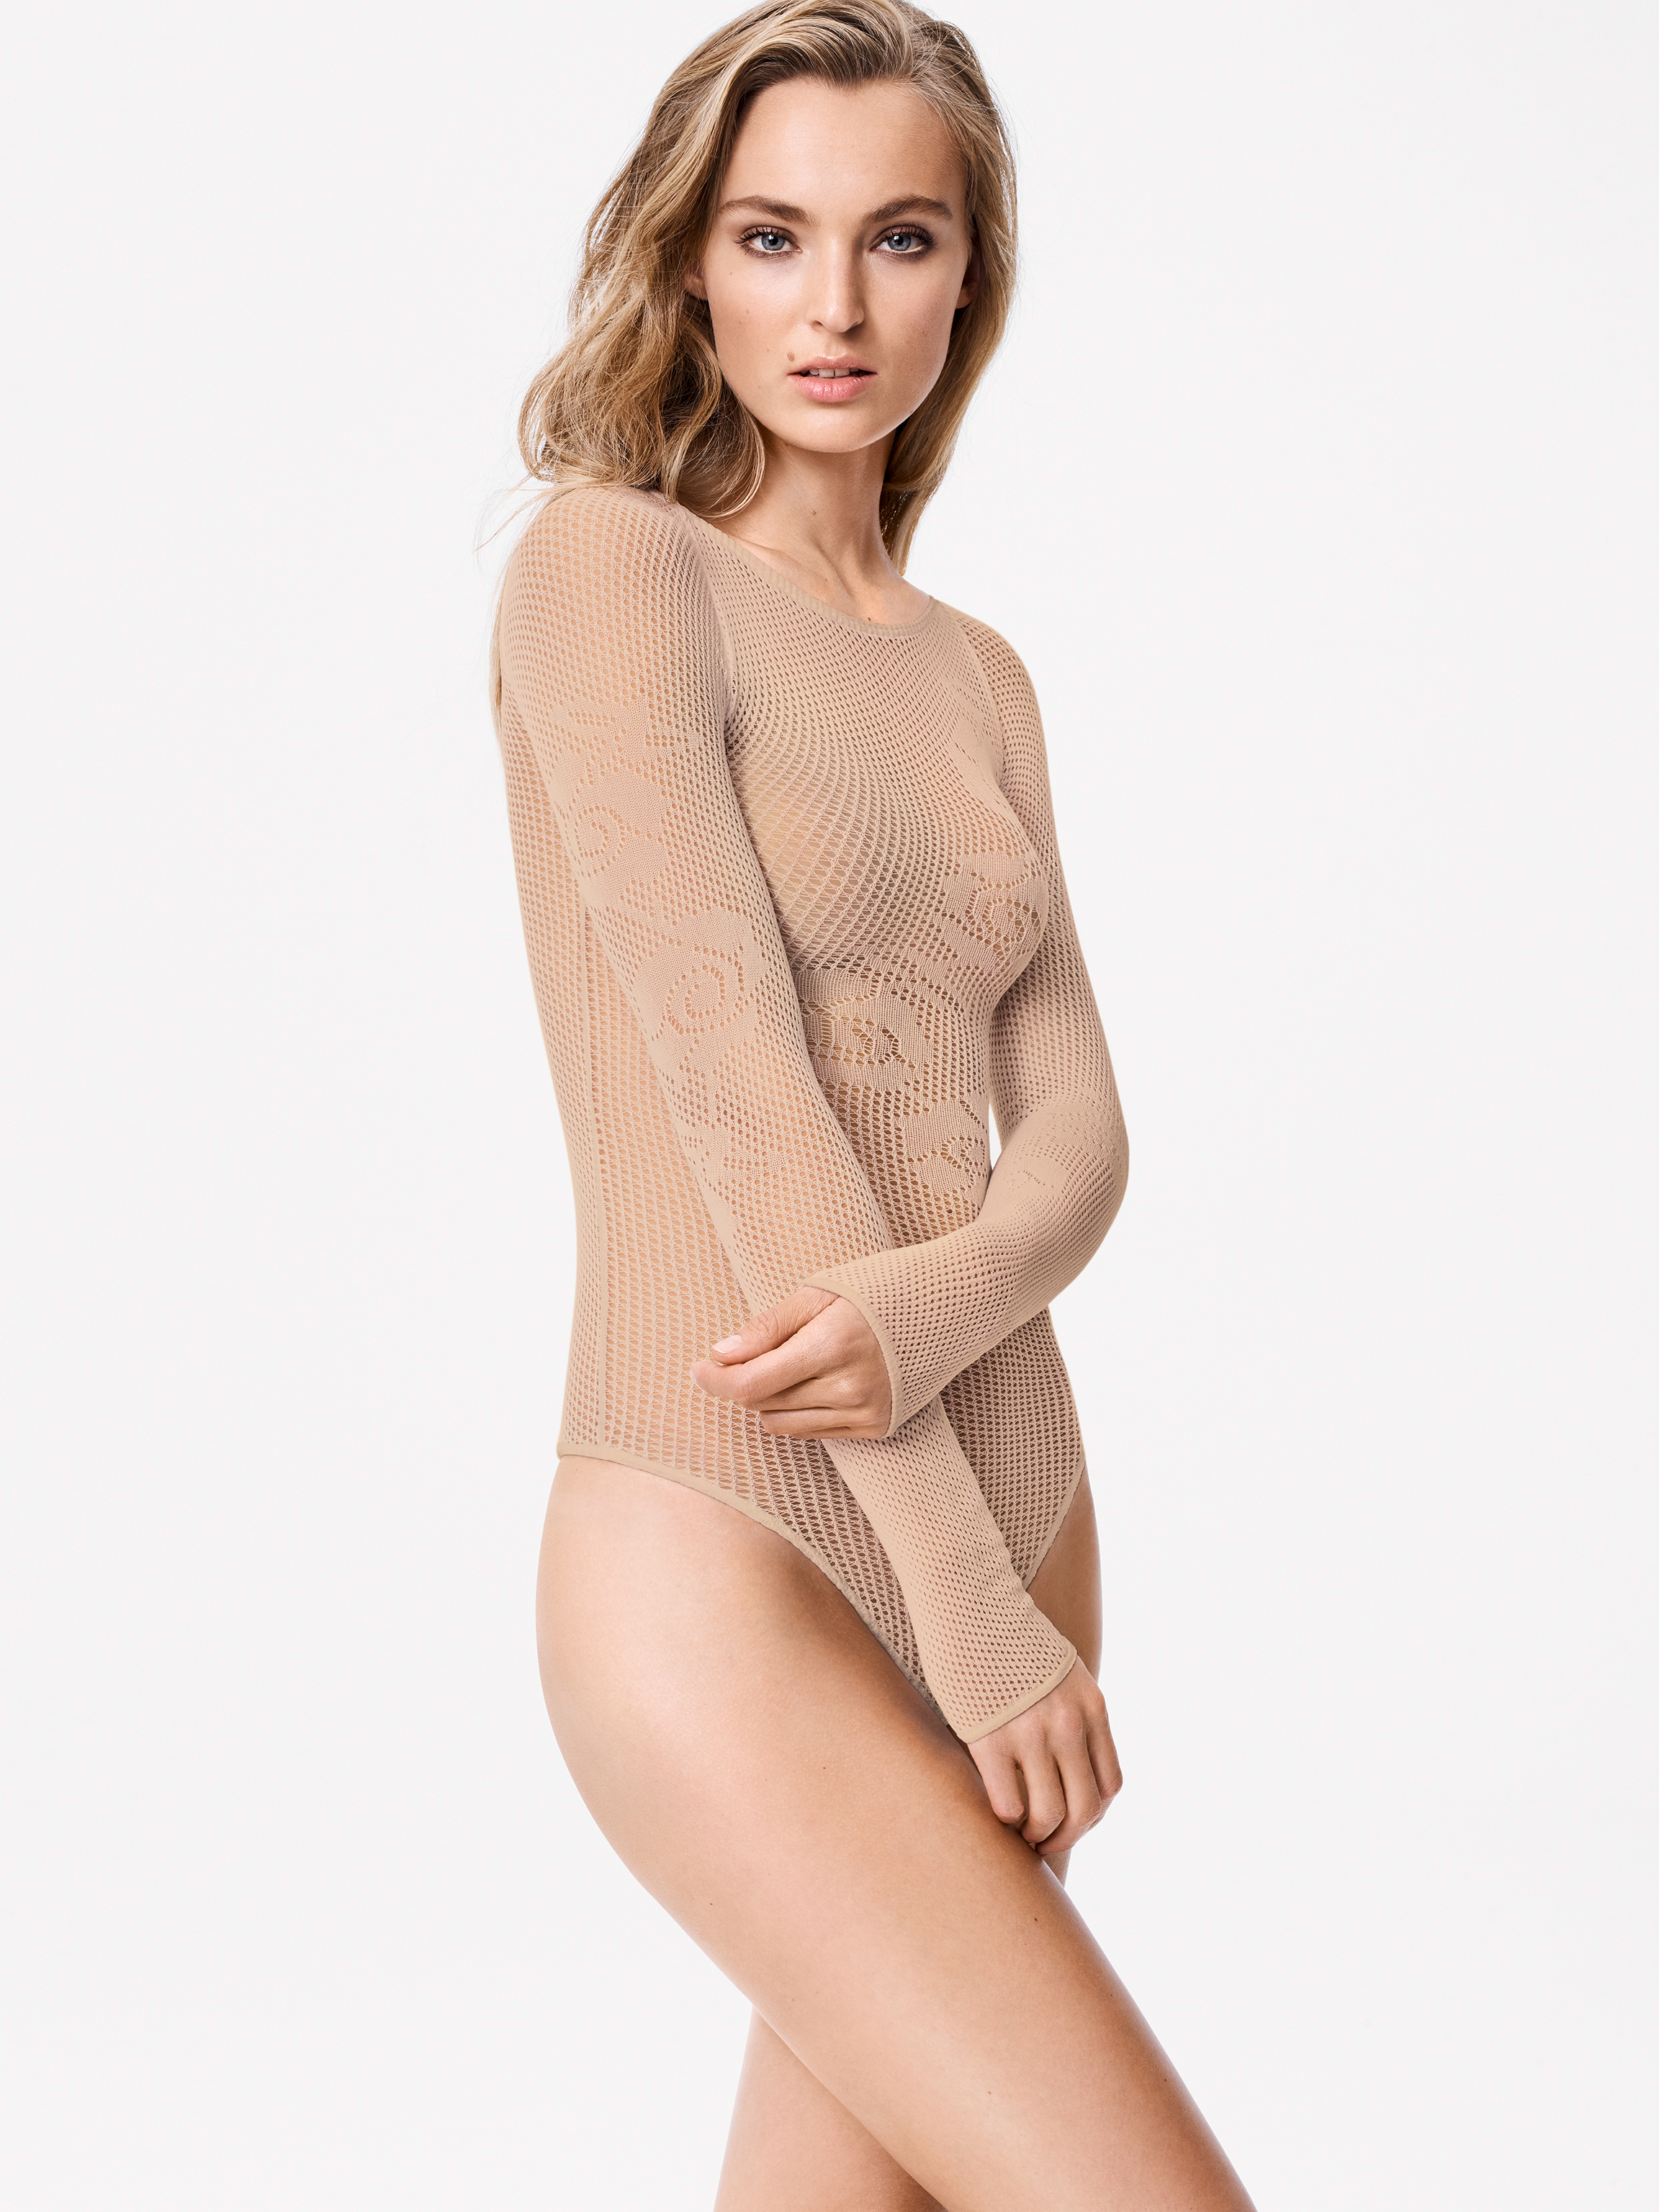 Wolford Apparel & Accessories > Clothing > Body Nellie String Body